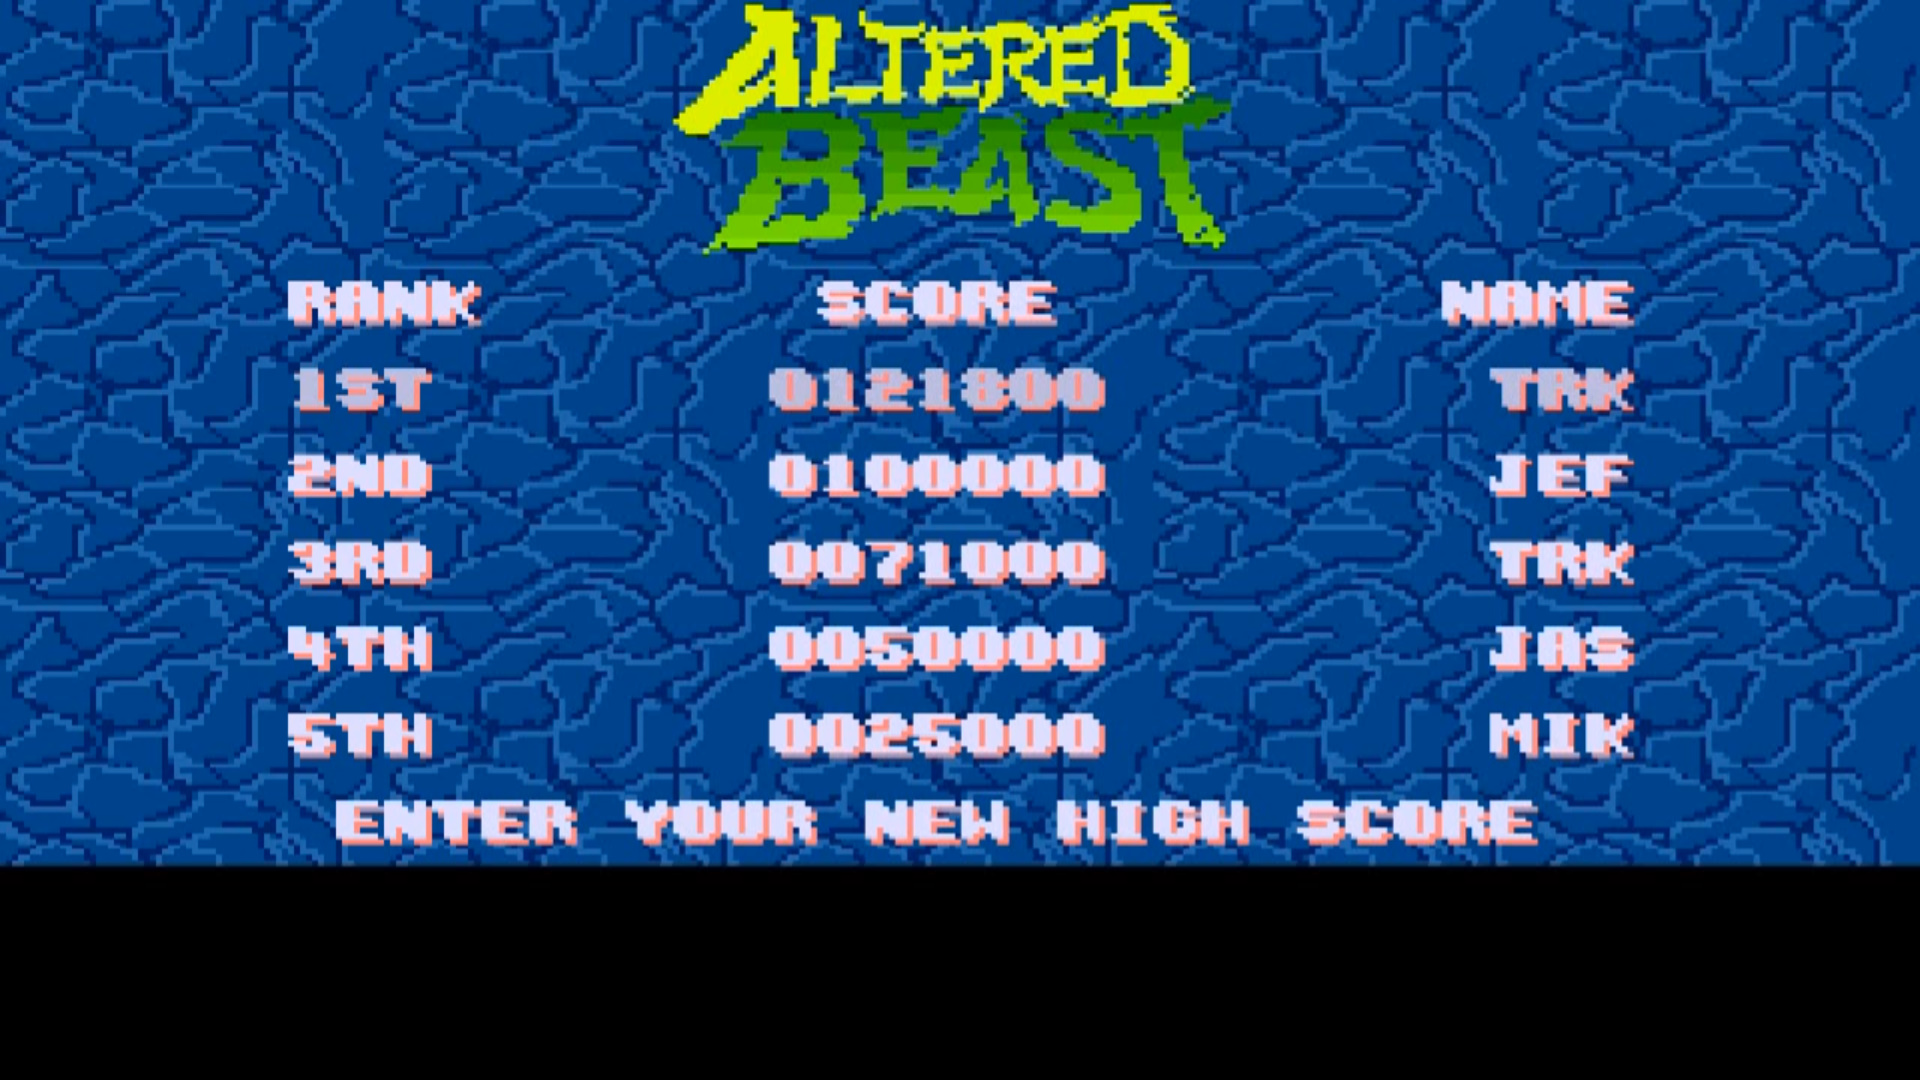 Altered Beast 121,800 points